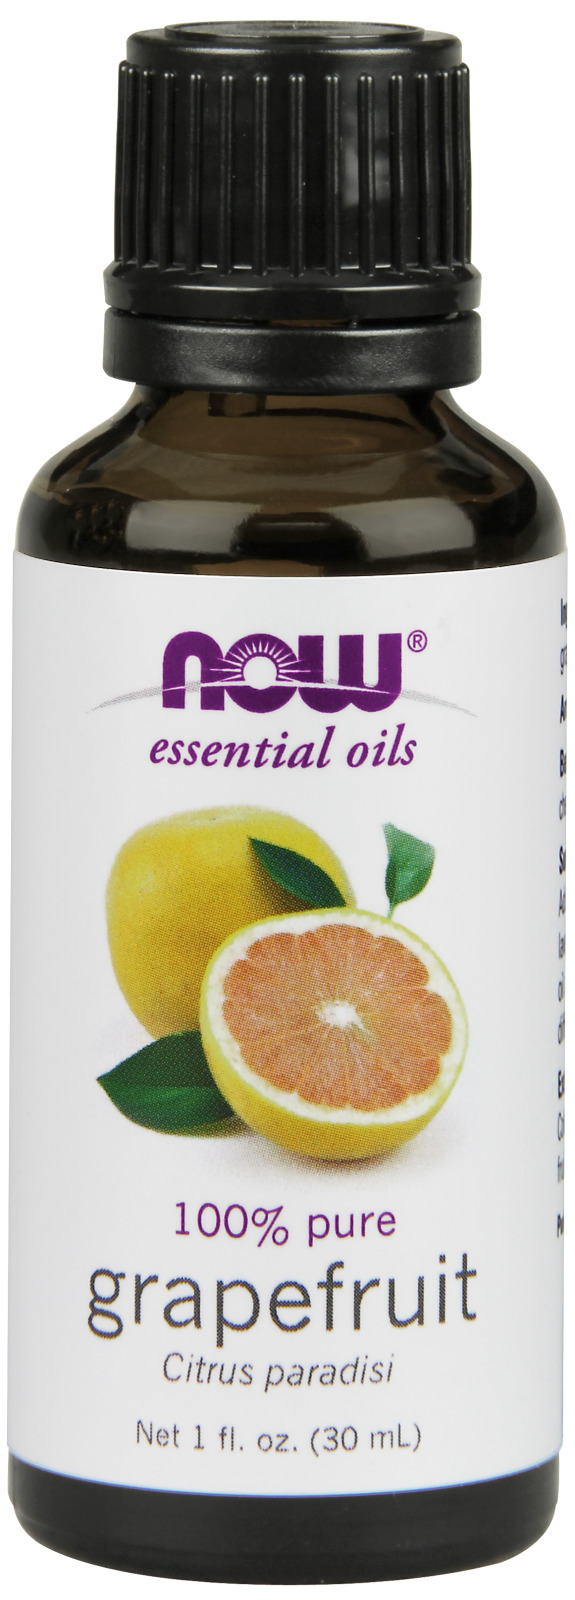 Grapefruit Oil 1 fl oz (30 ml) by NOW